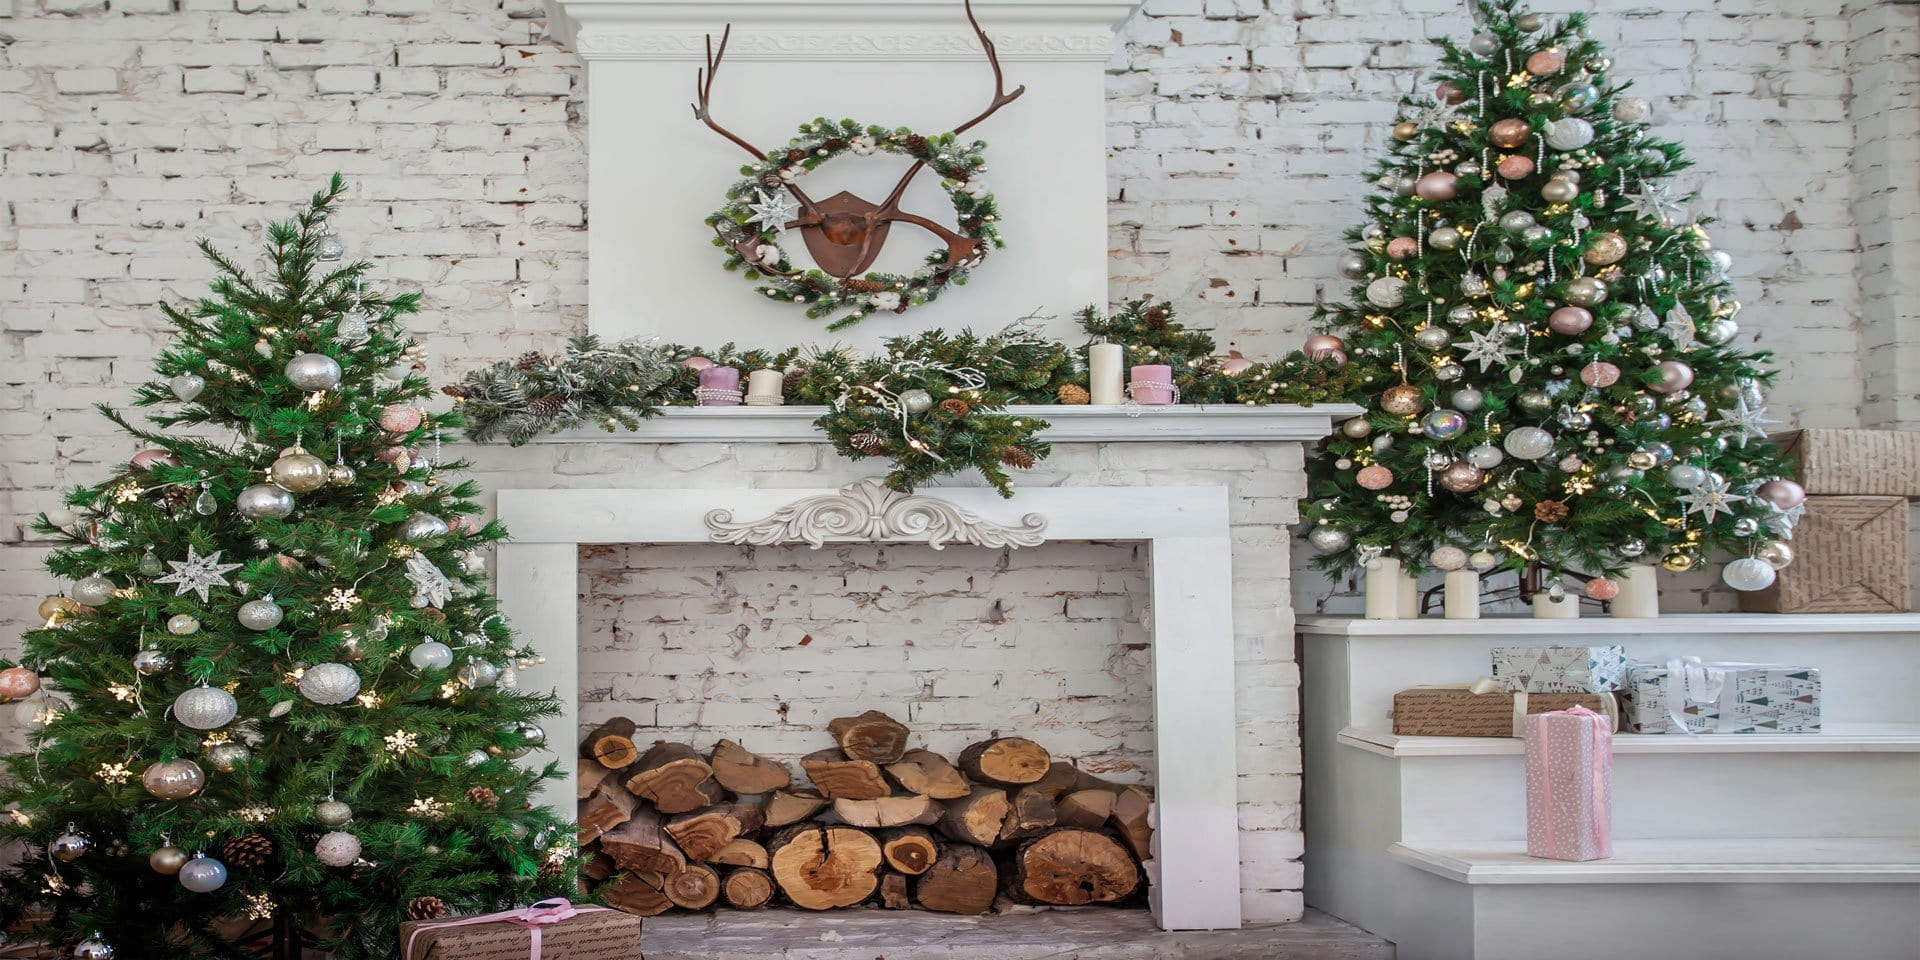 Load image into Gallery viewer, Kate Christmas Tree with Fireplace White Brick Wall Warmful Backdrop for Photography